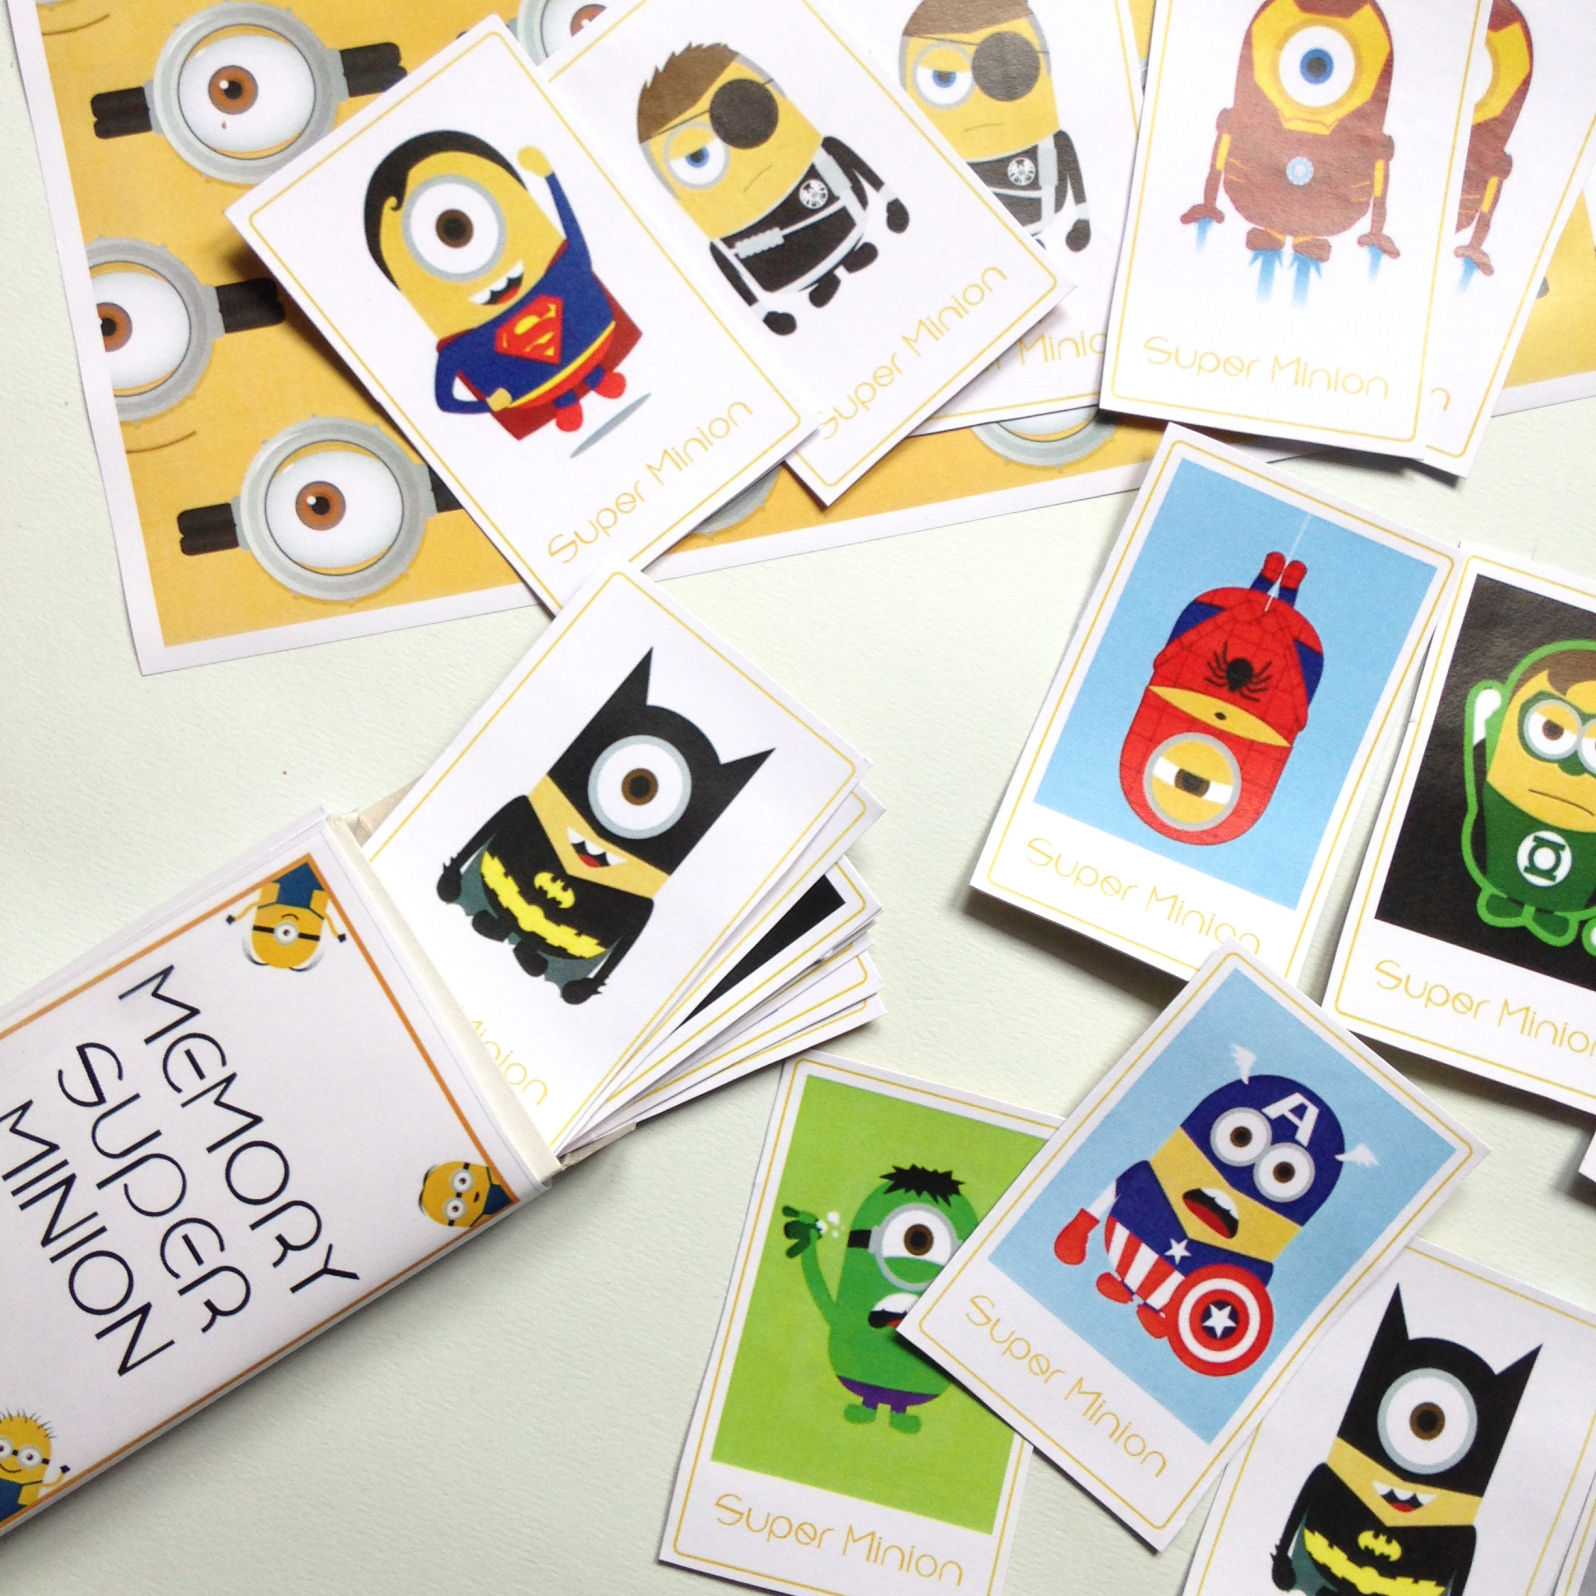 Minion Memory Game from Wonder Kids